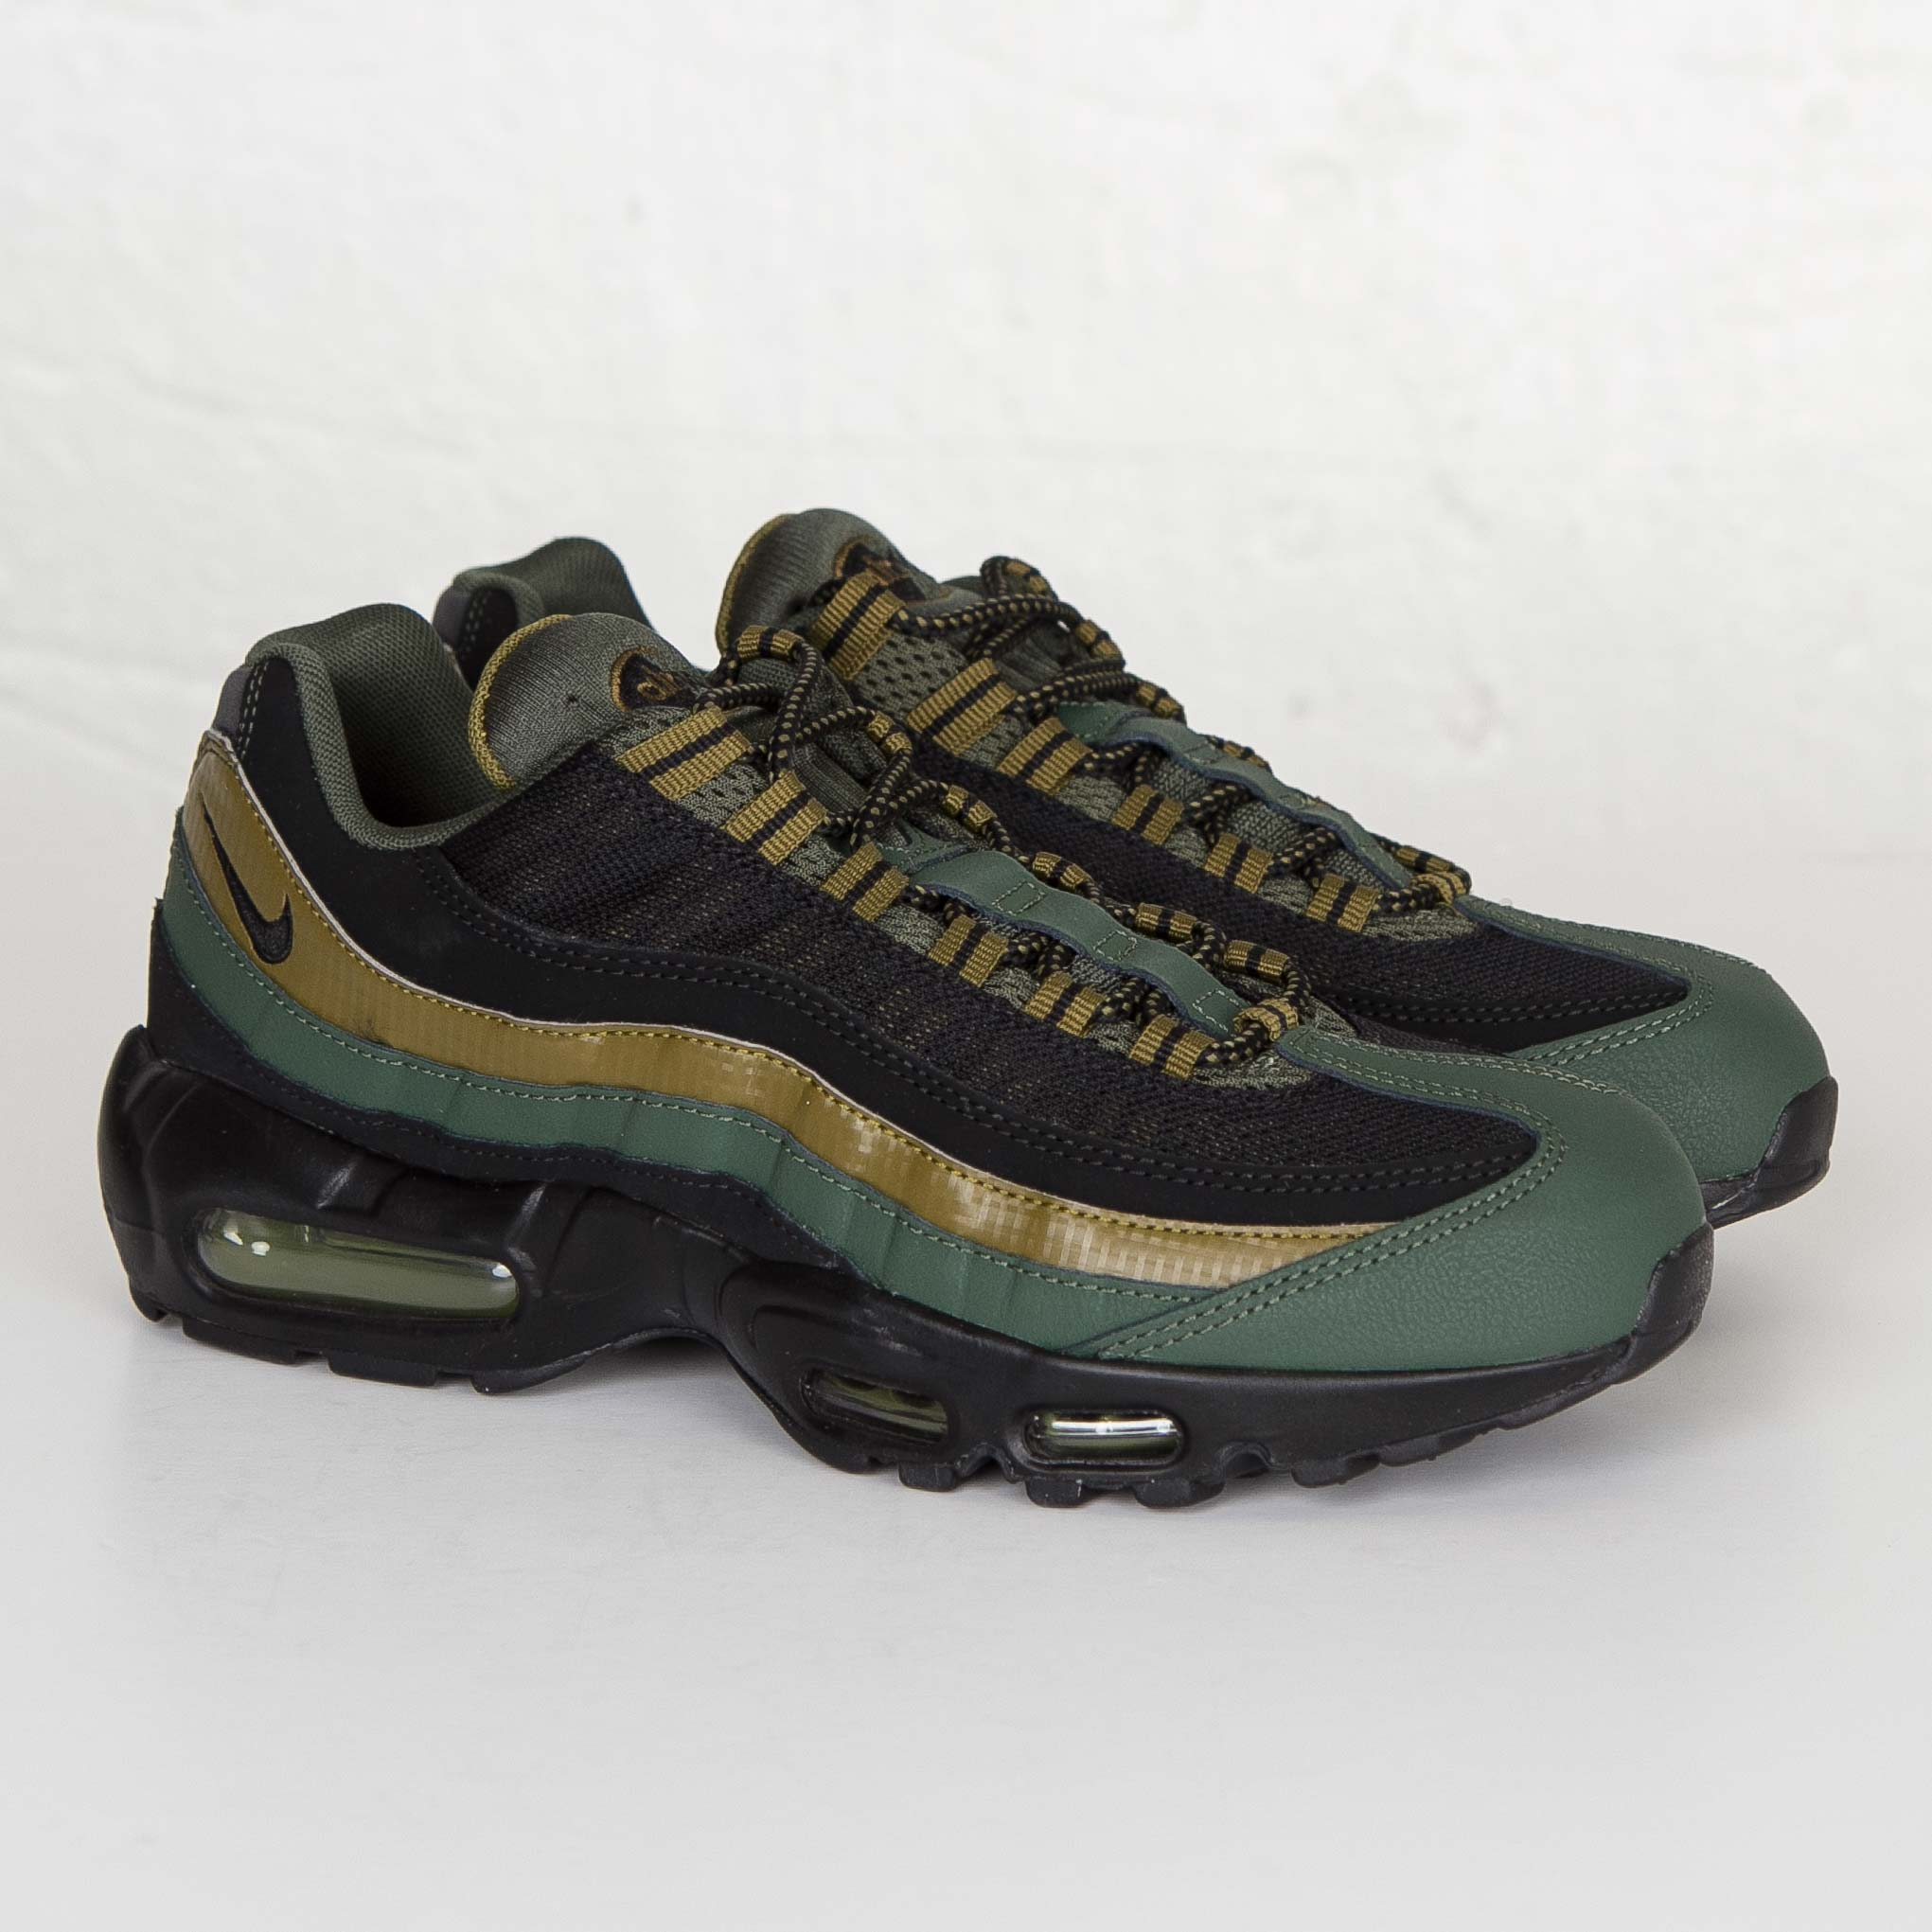 official photos 45d25 6e2f7 Nike Air Max 95 Essential